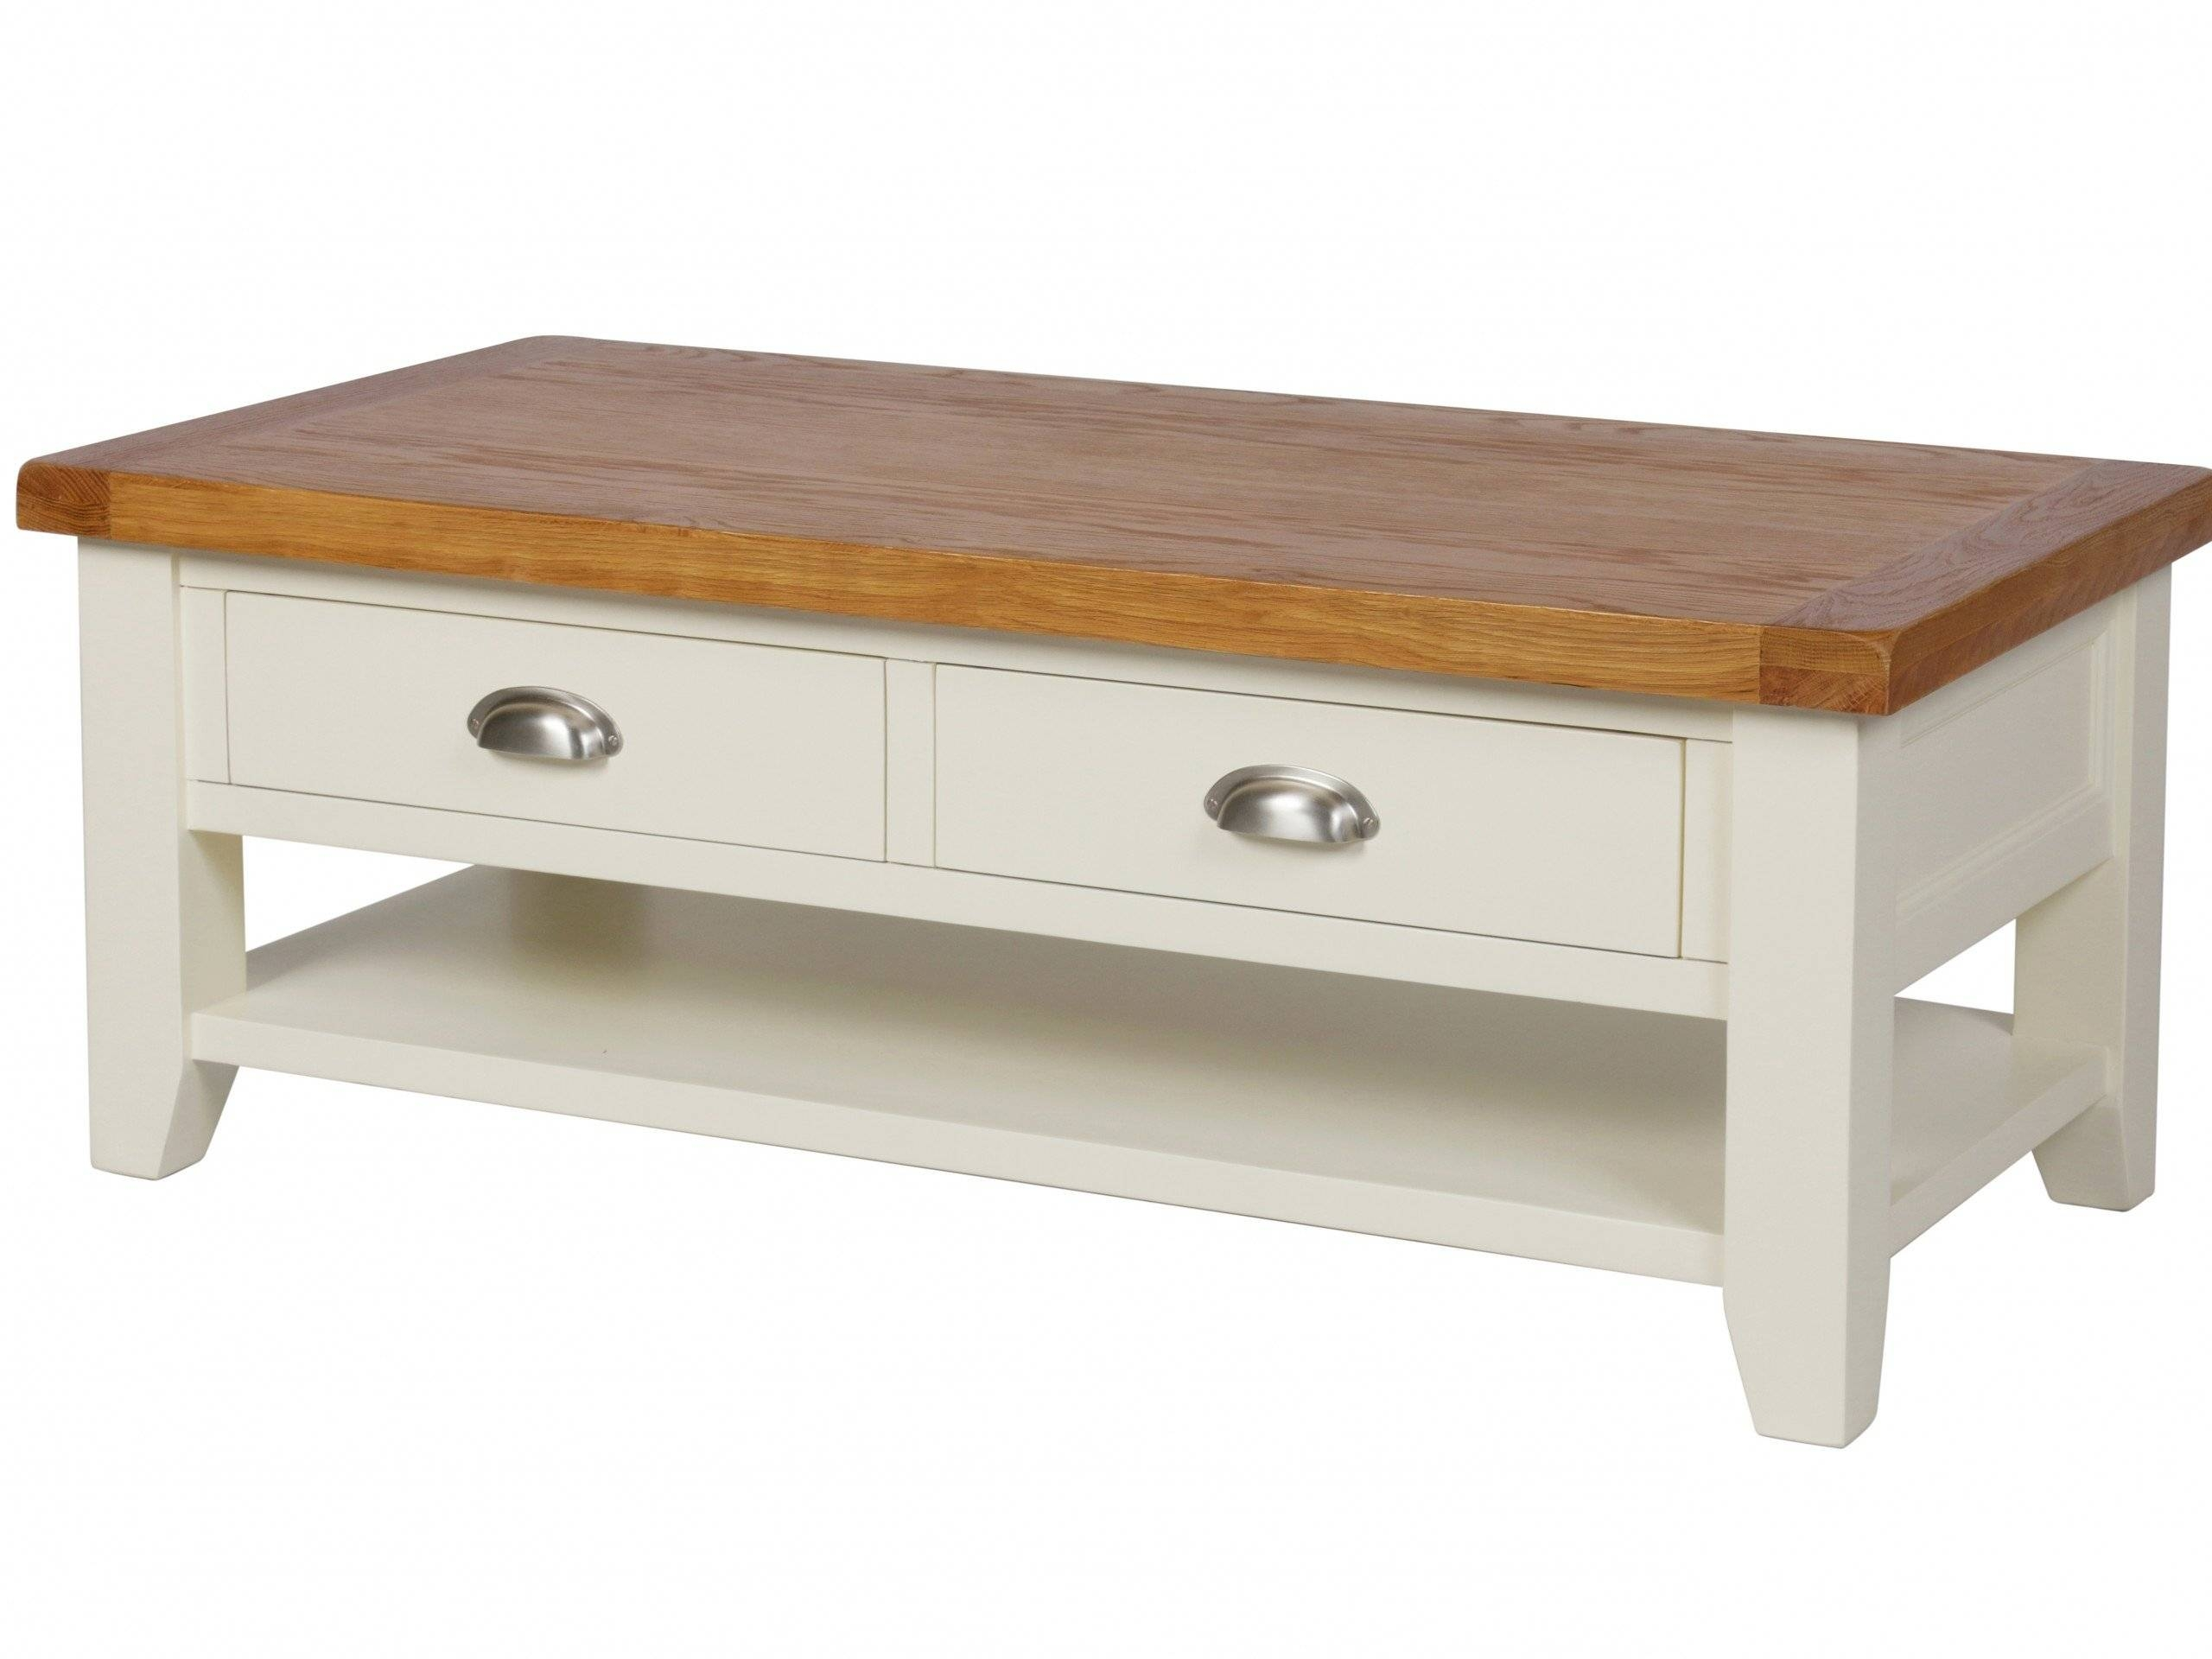 Country Oak Cream Painted Large 4 Drawer Coffee Table With Shelf regarding Oak Wood Coffee Tables (Image 6 of 15)